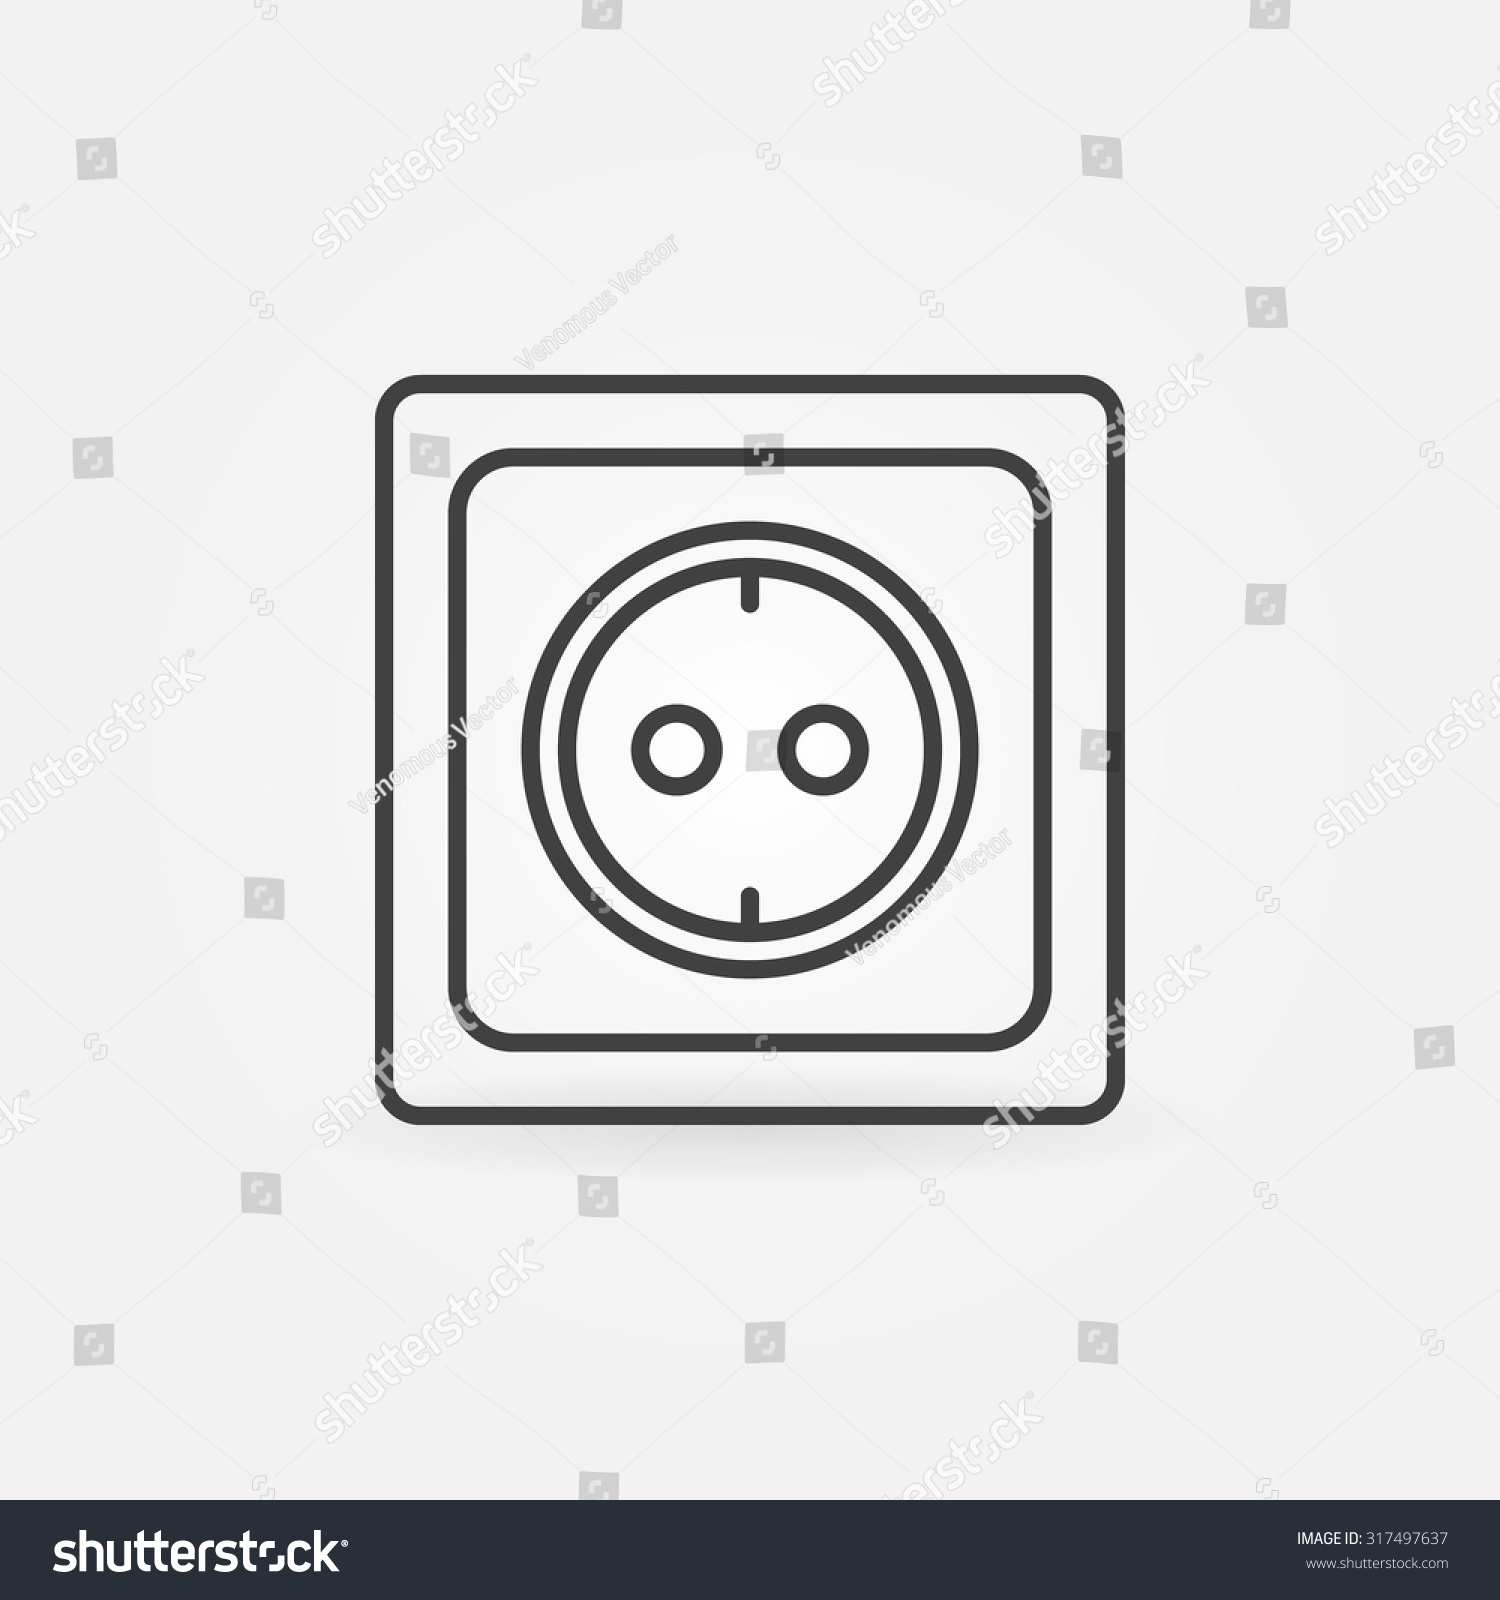 rechargeable outlet symbol